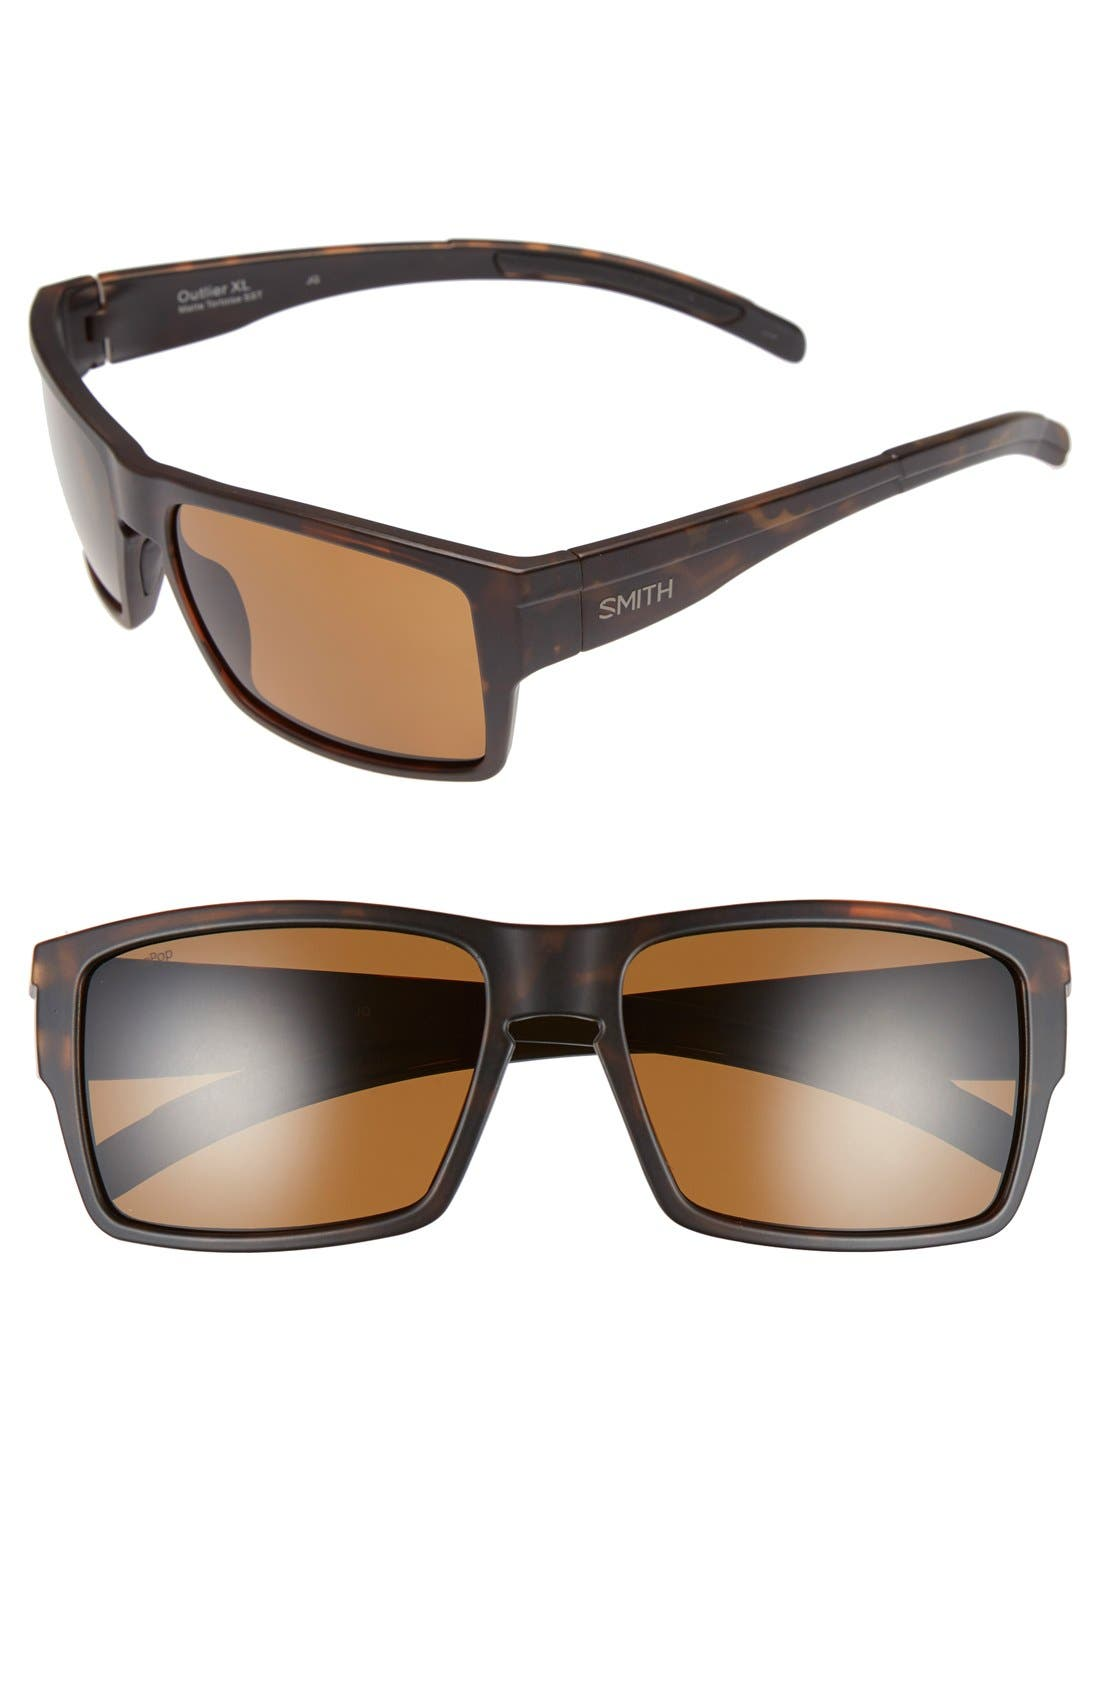 'Outlier XL' 56mm Polarized Sunglasses,                             Main thumbnail 1, color,                             201